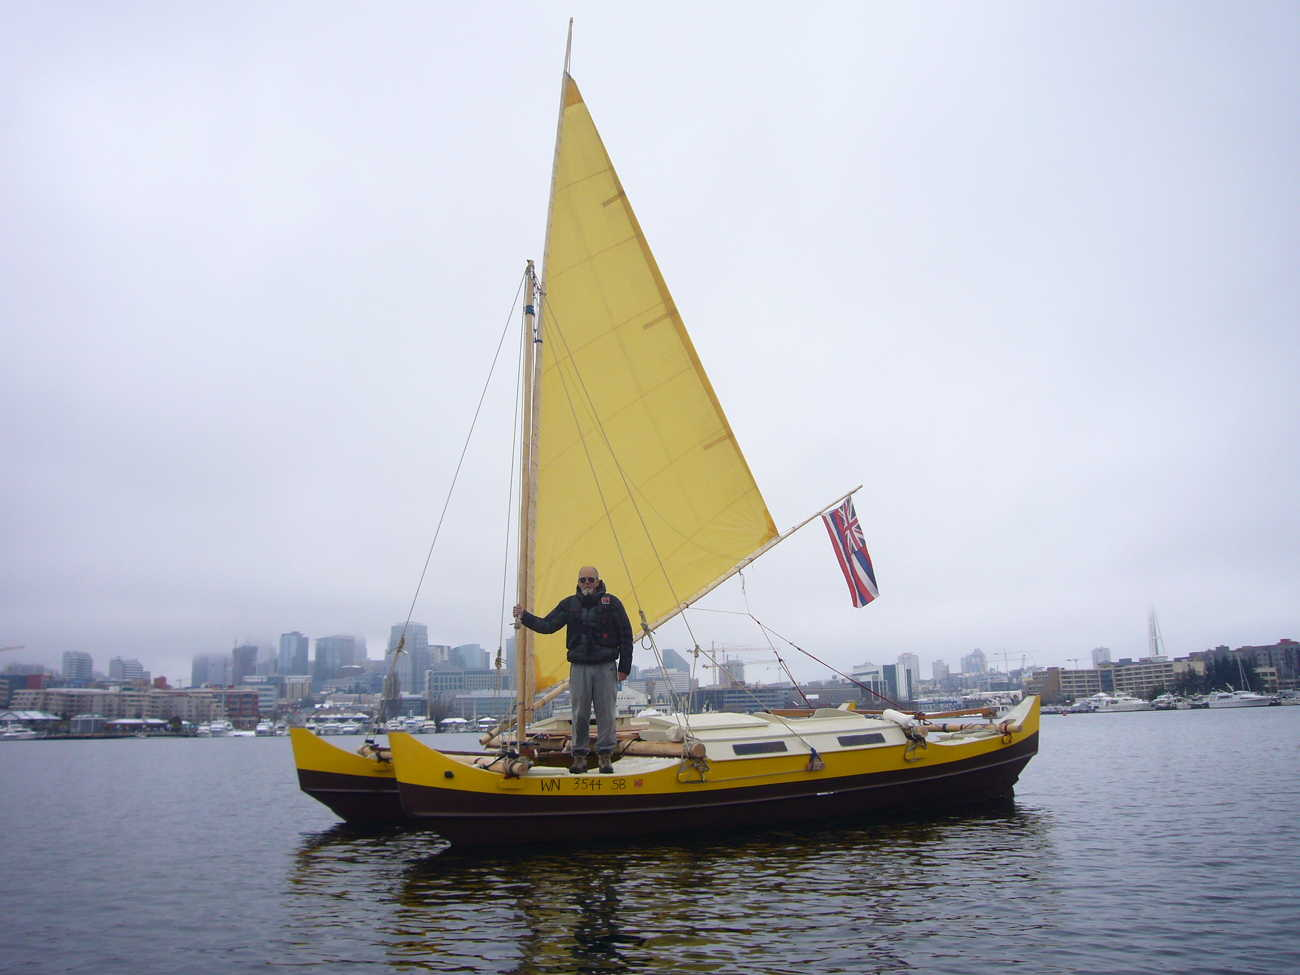 Yellow and black Pahi 26 with a crabclaw sail, one man aboard and a city in the background